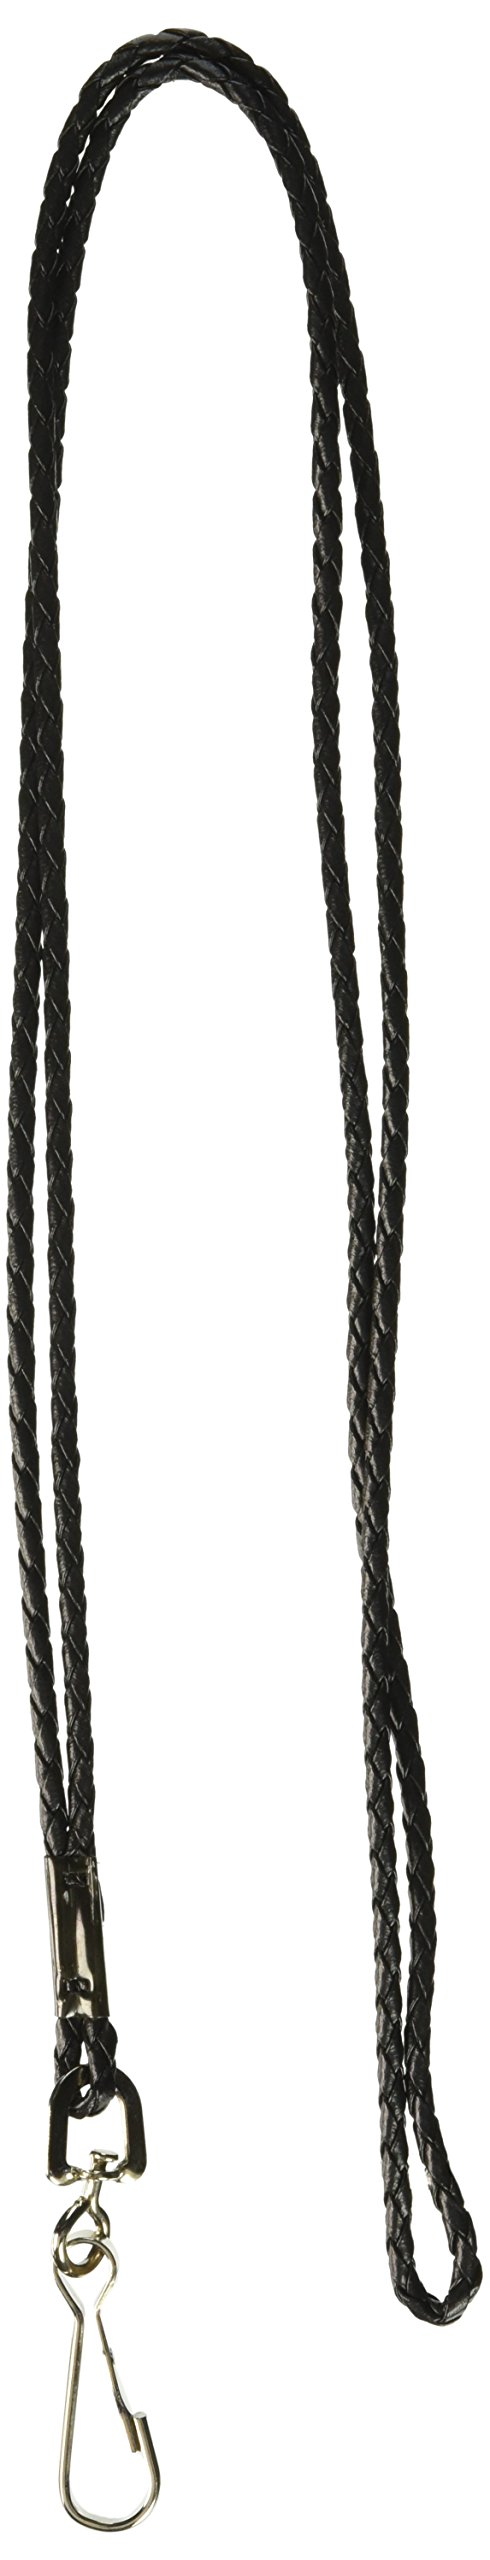 Leather Brothers Lanyard Dog Whistles, 24-Inch